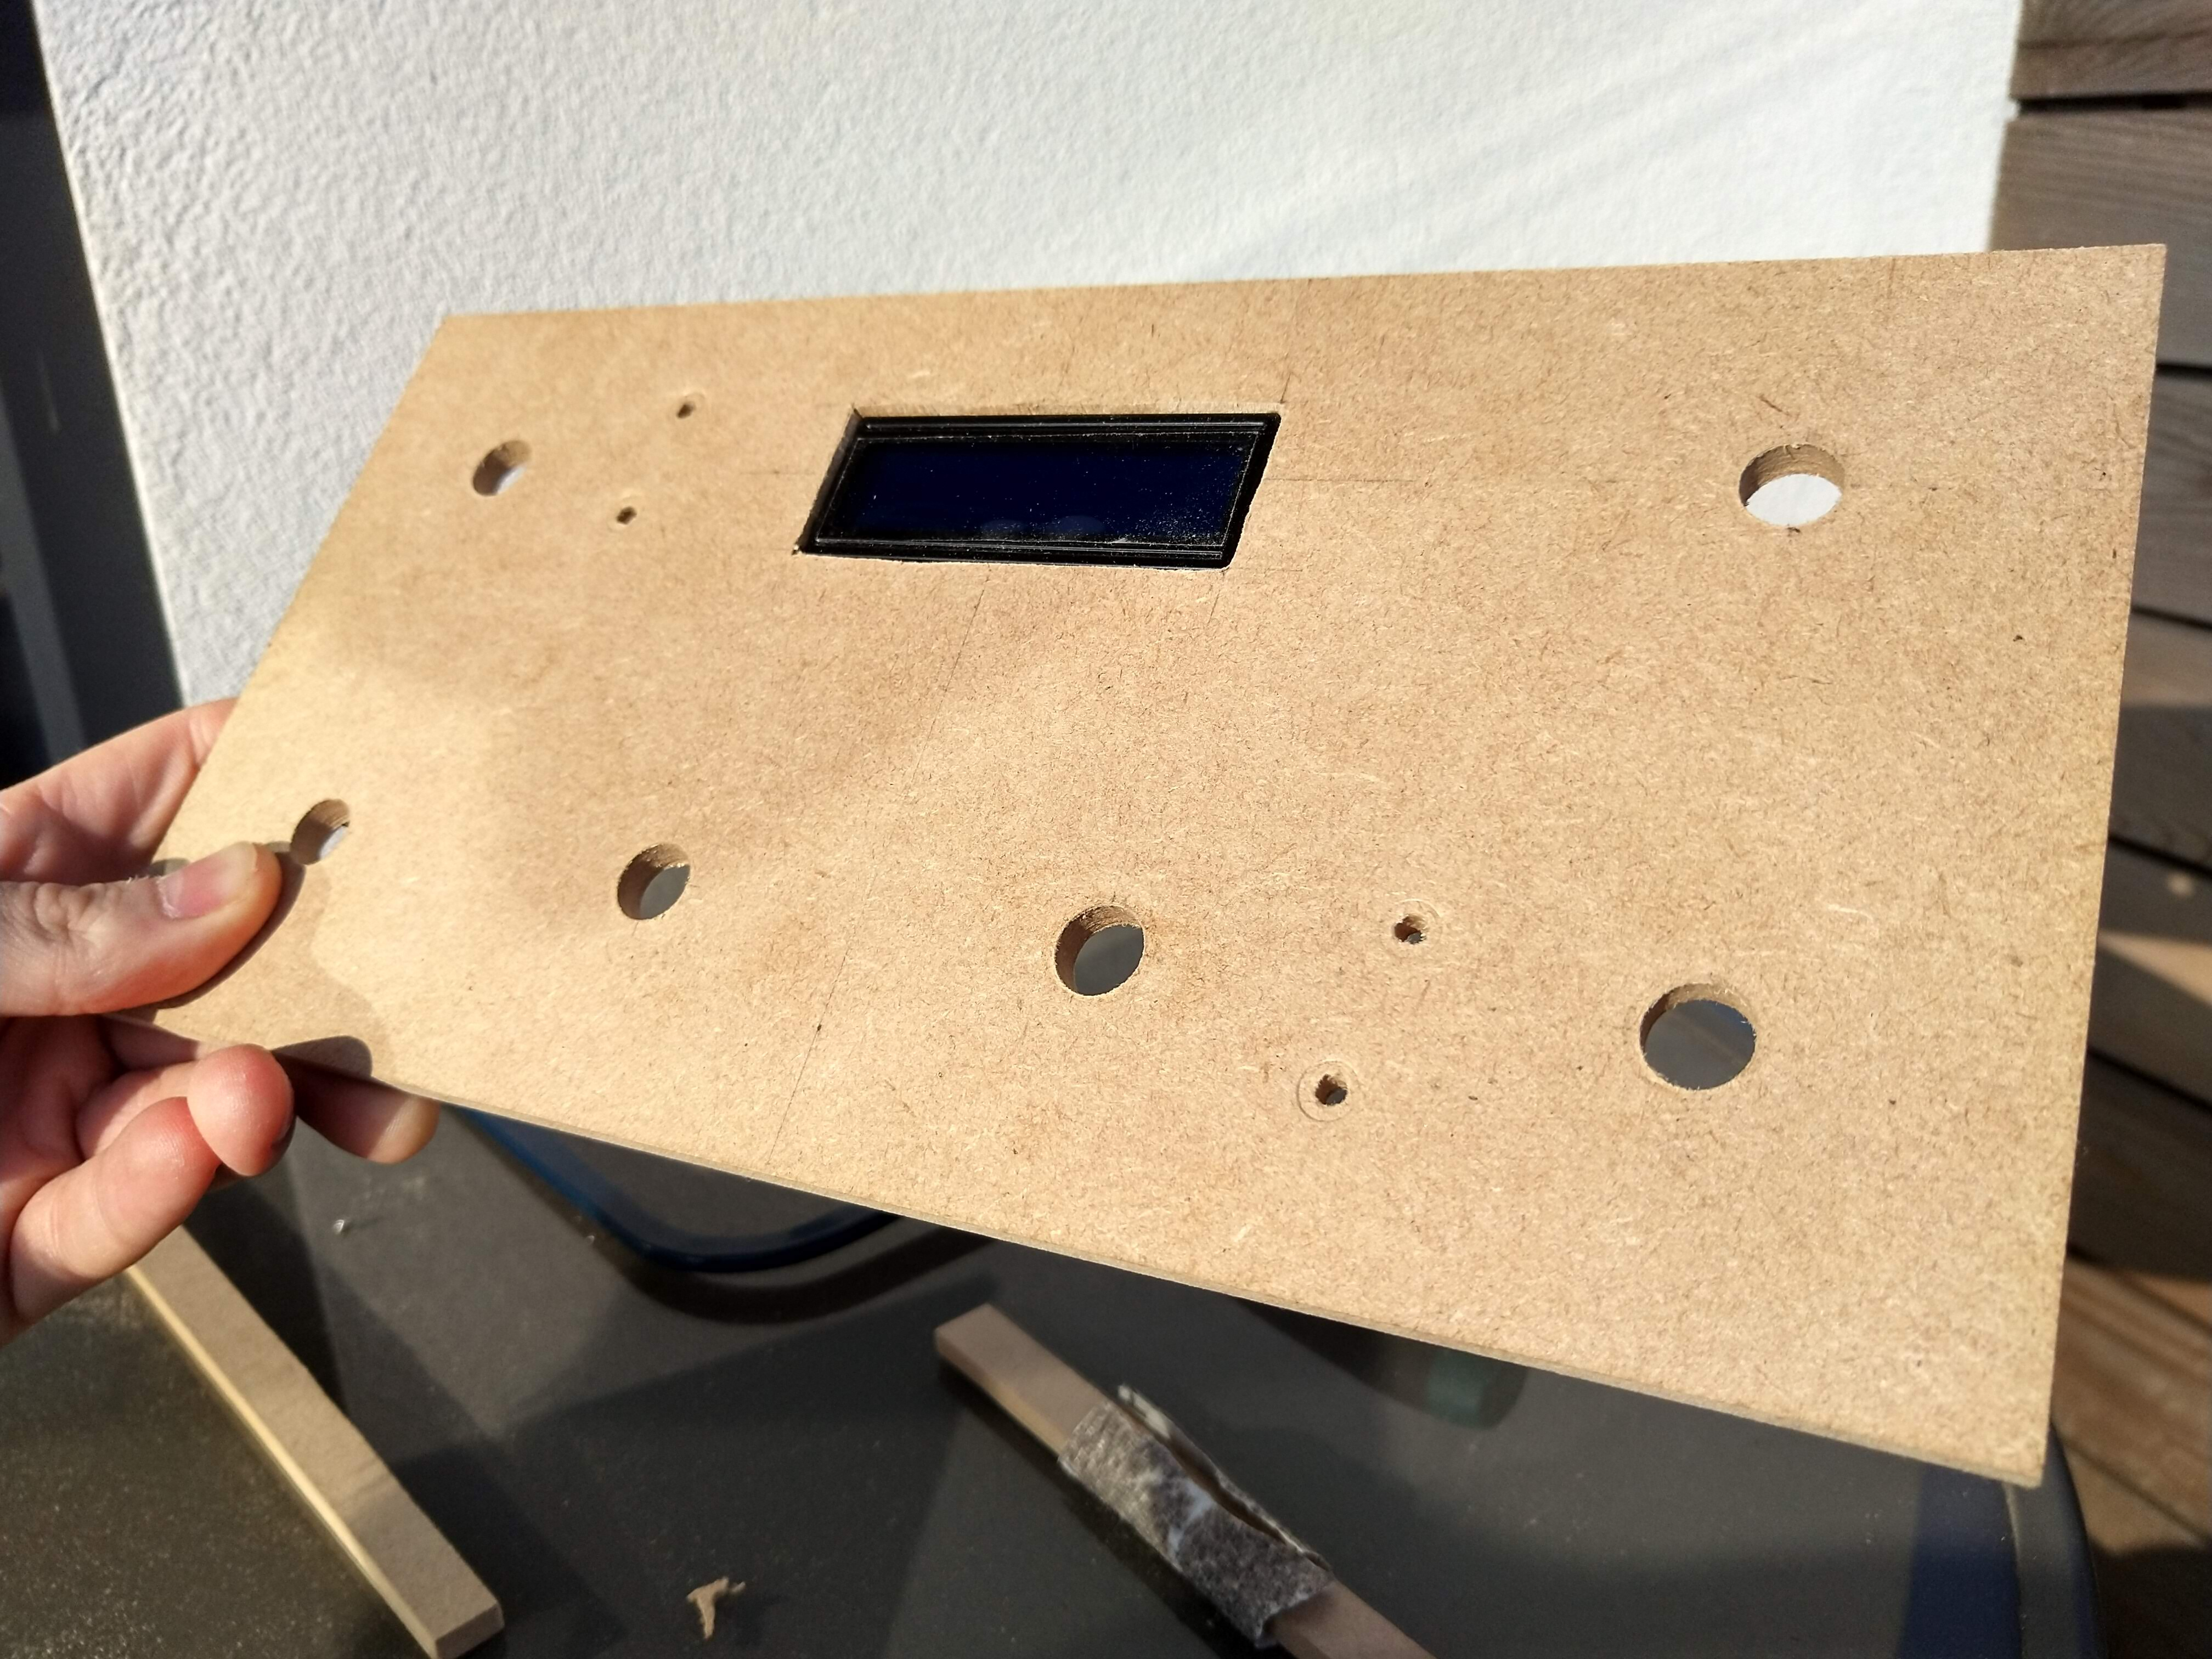 A piece of MDF with six holes in the top of it, with four along the lower long edge and two spaced against the upper long edge. There is an LCD screen in the middle of the upper long edge between the two holes